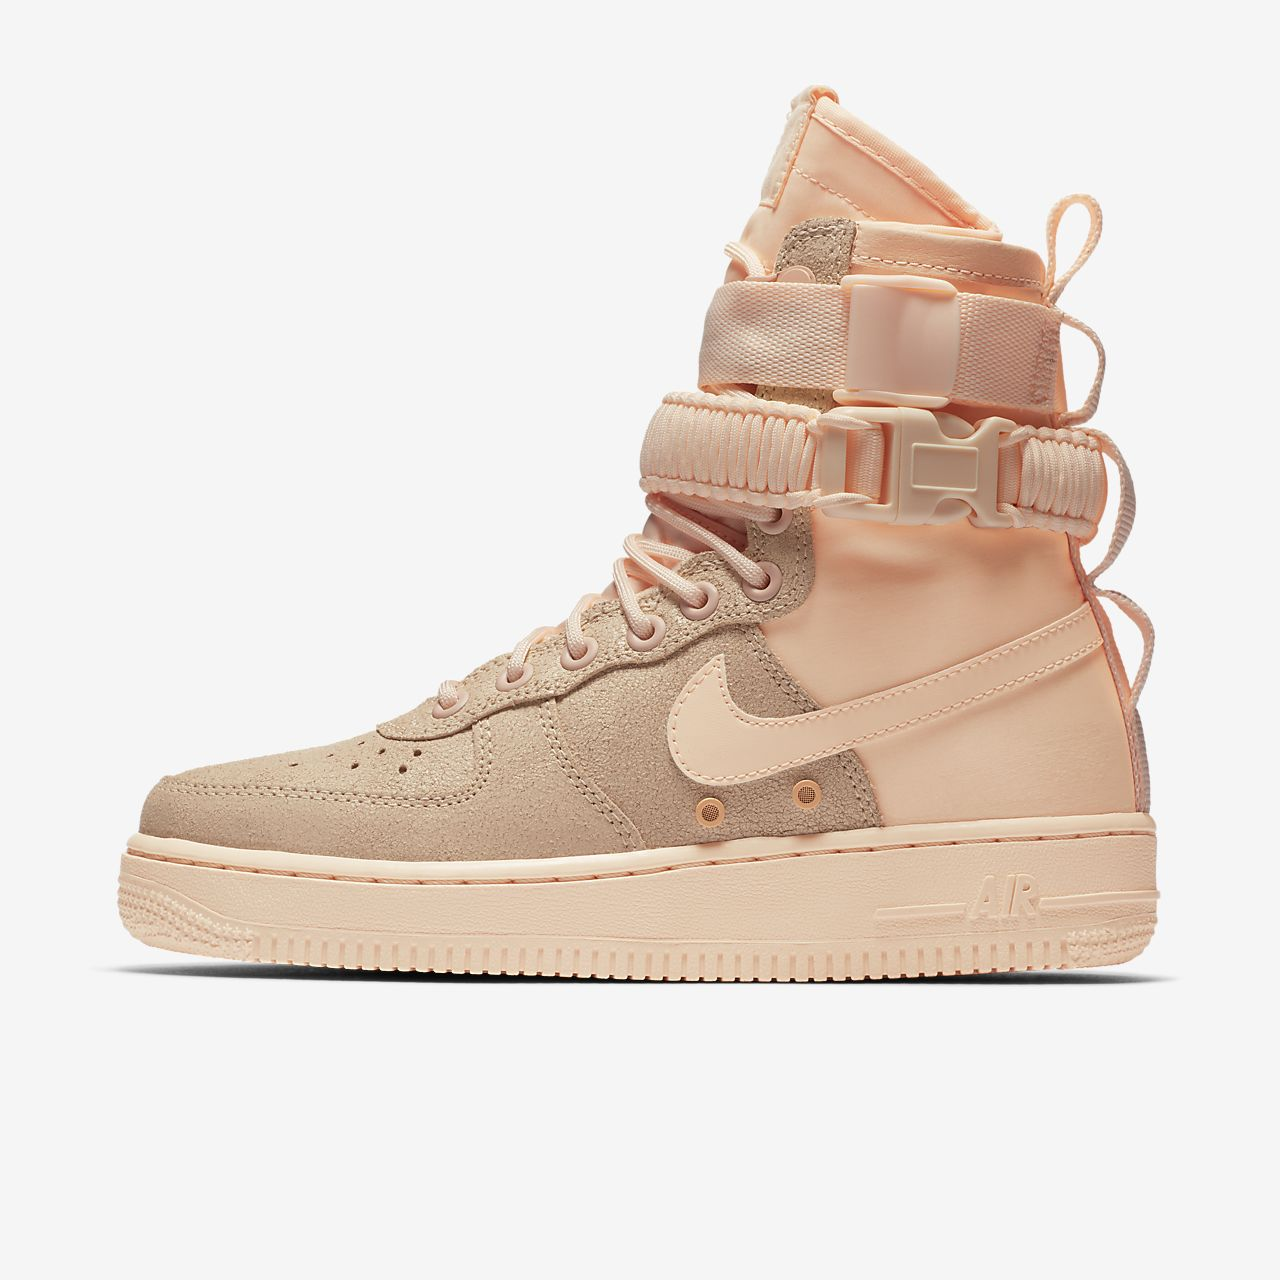 super popular ff9cd 4ff55 ... Nike SF Air Force 1 Womens Boot